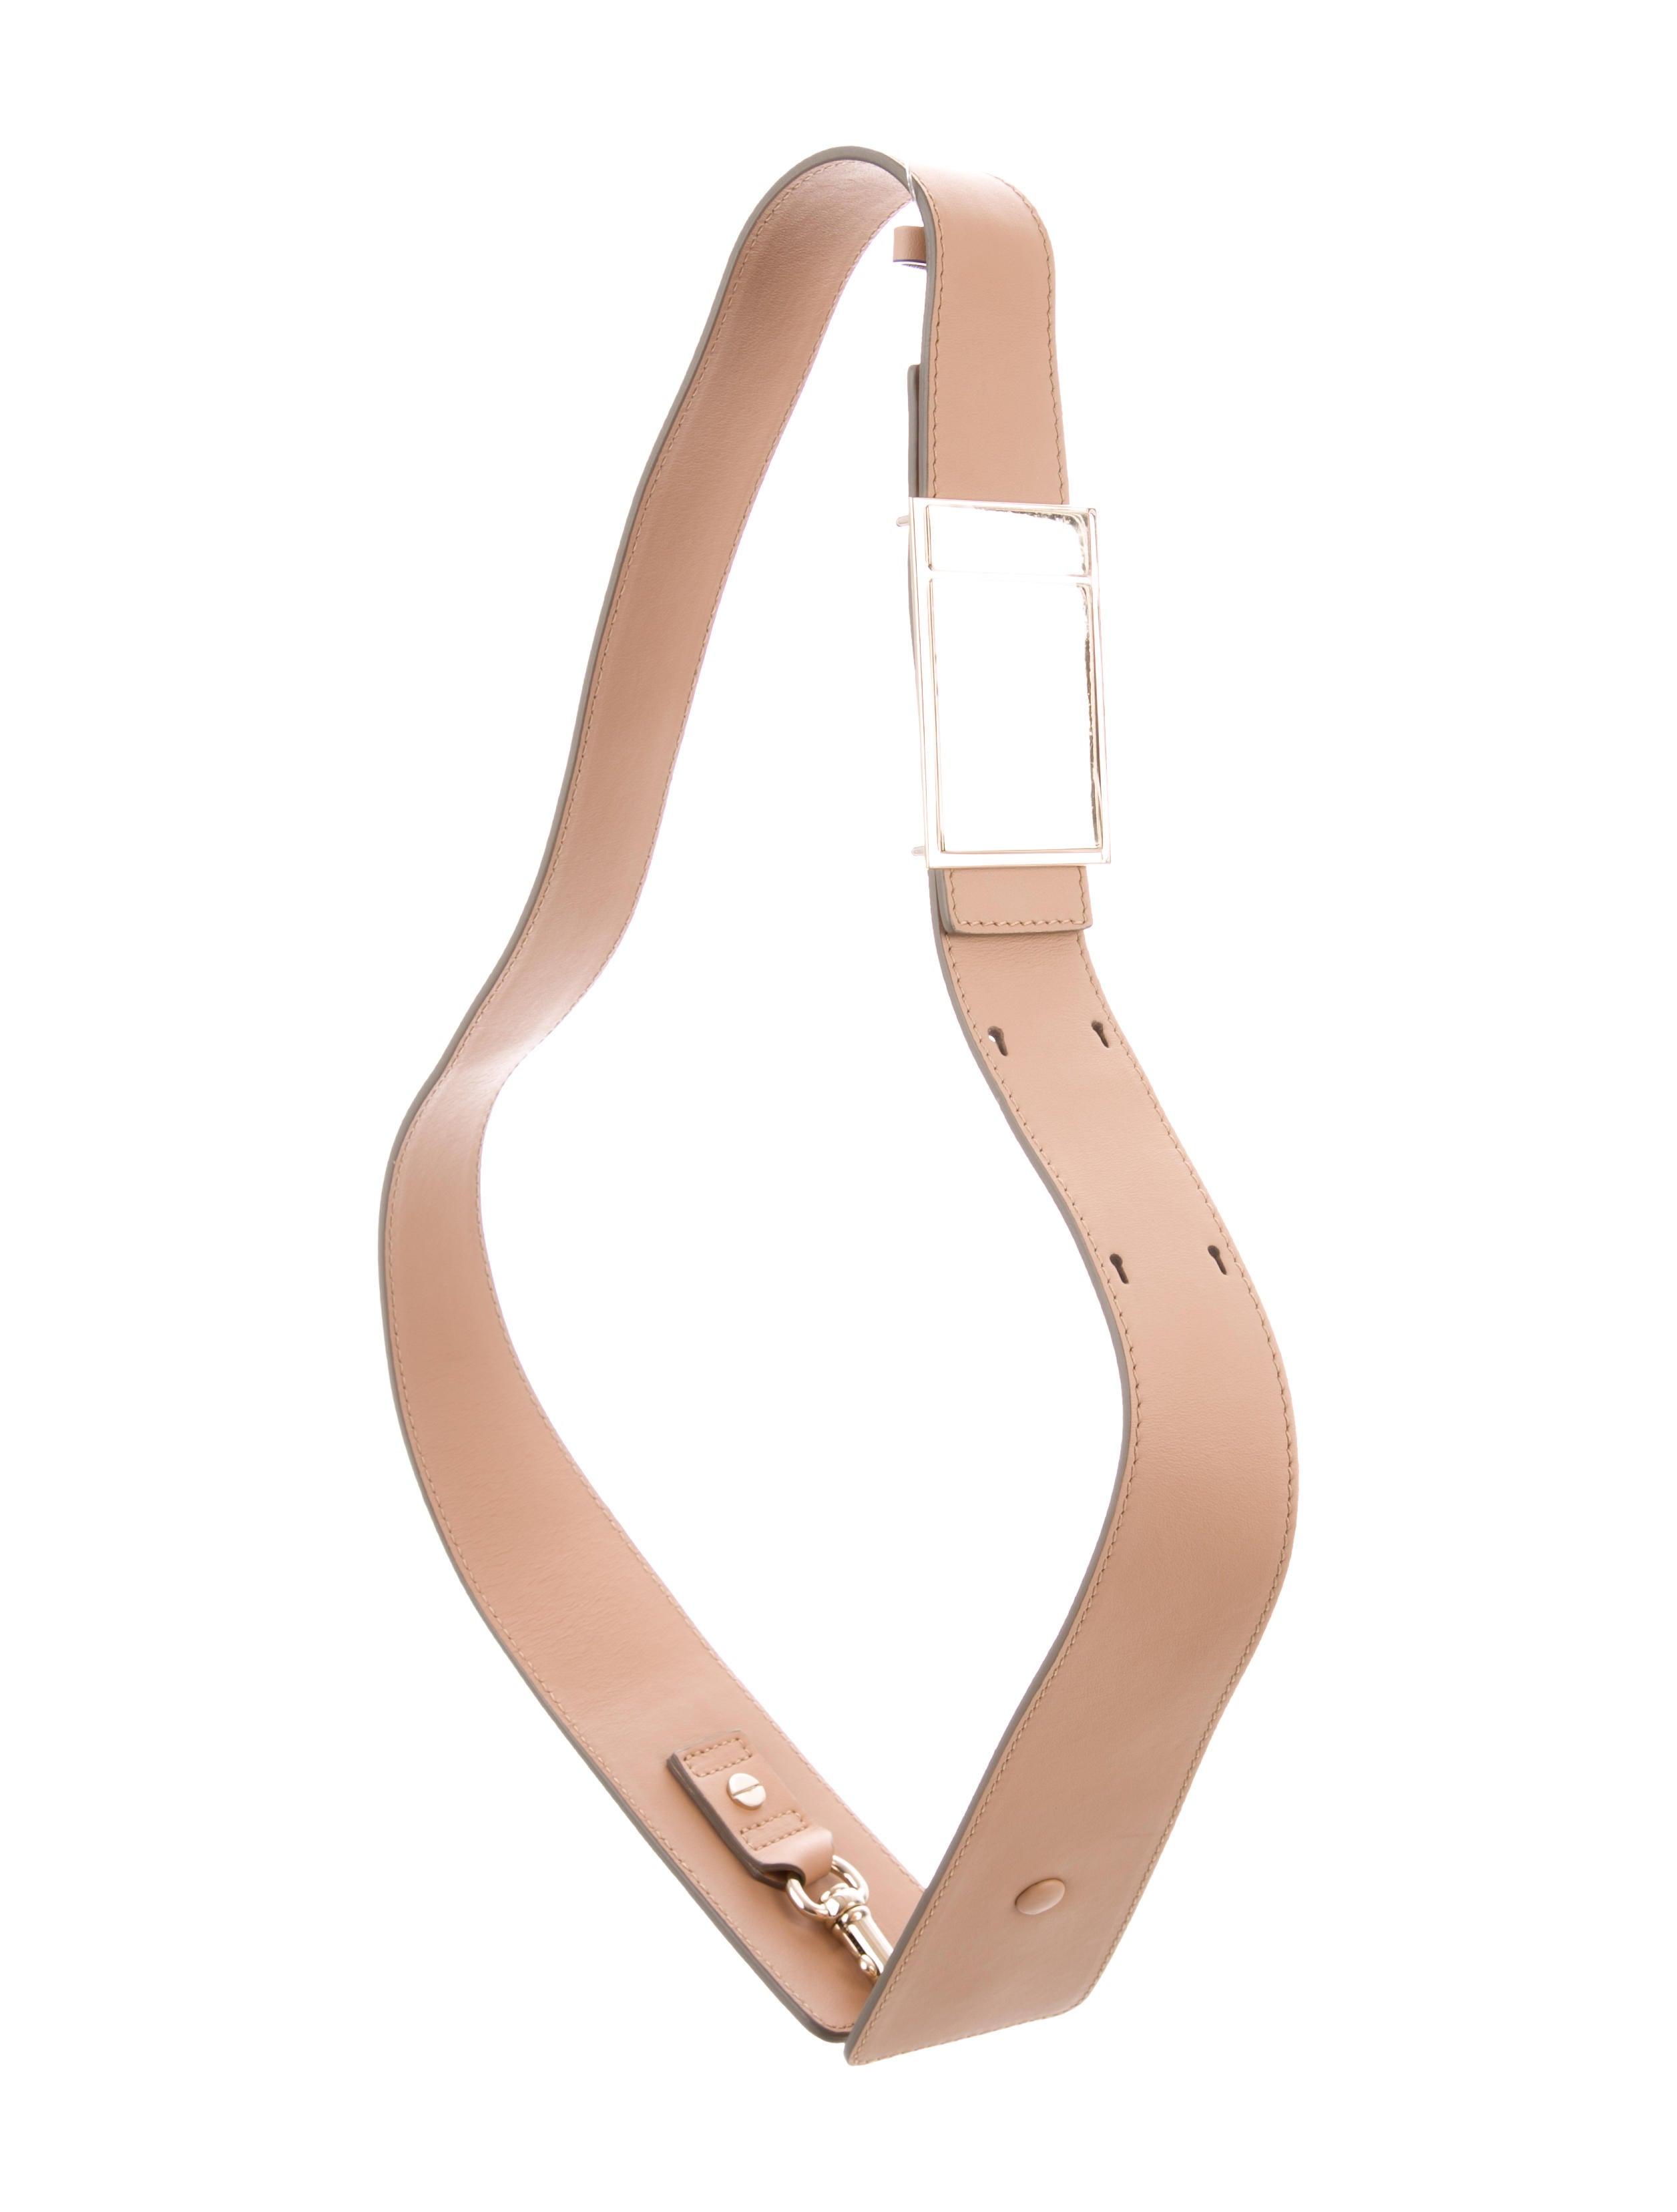 514e815363e1 Chloé Adjustable Shoulder Strap - Accessories - CHL93260